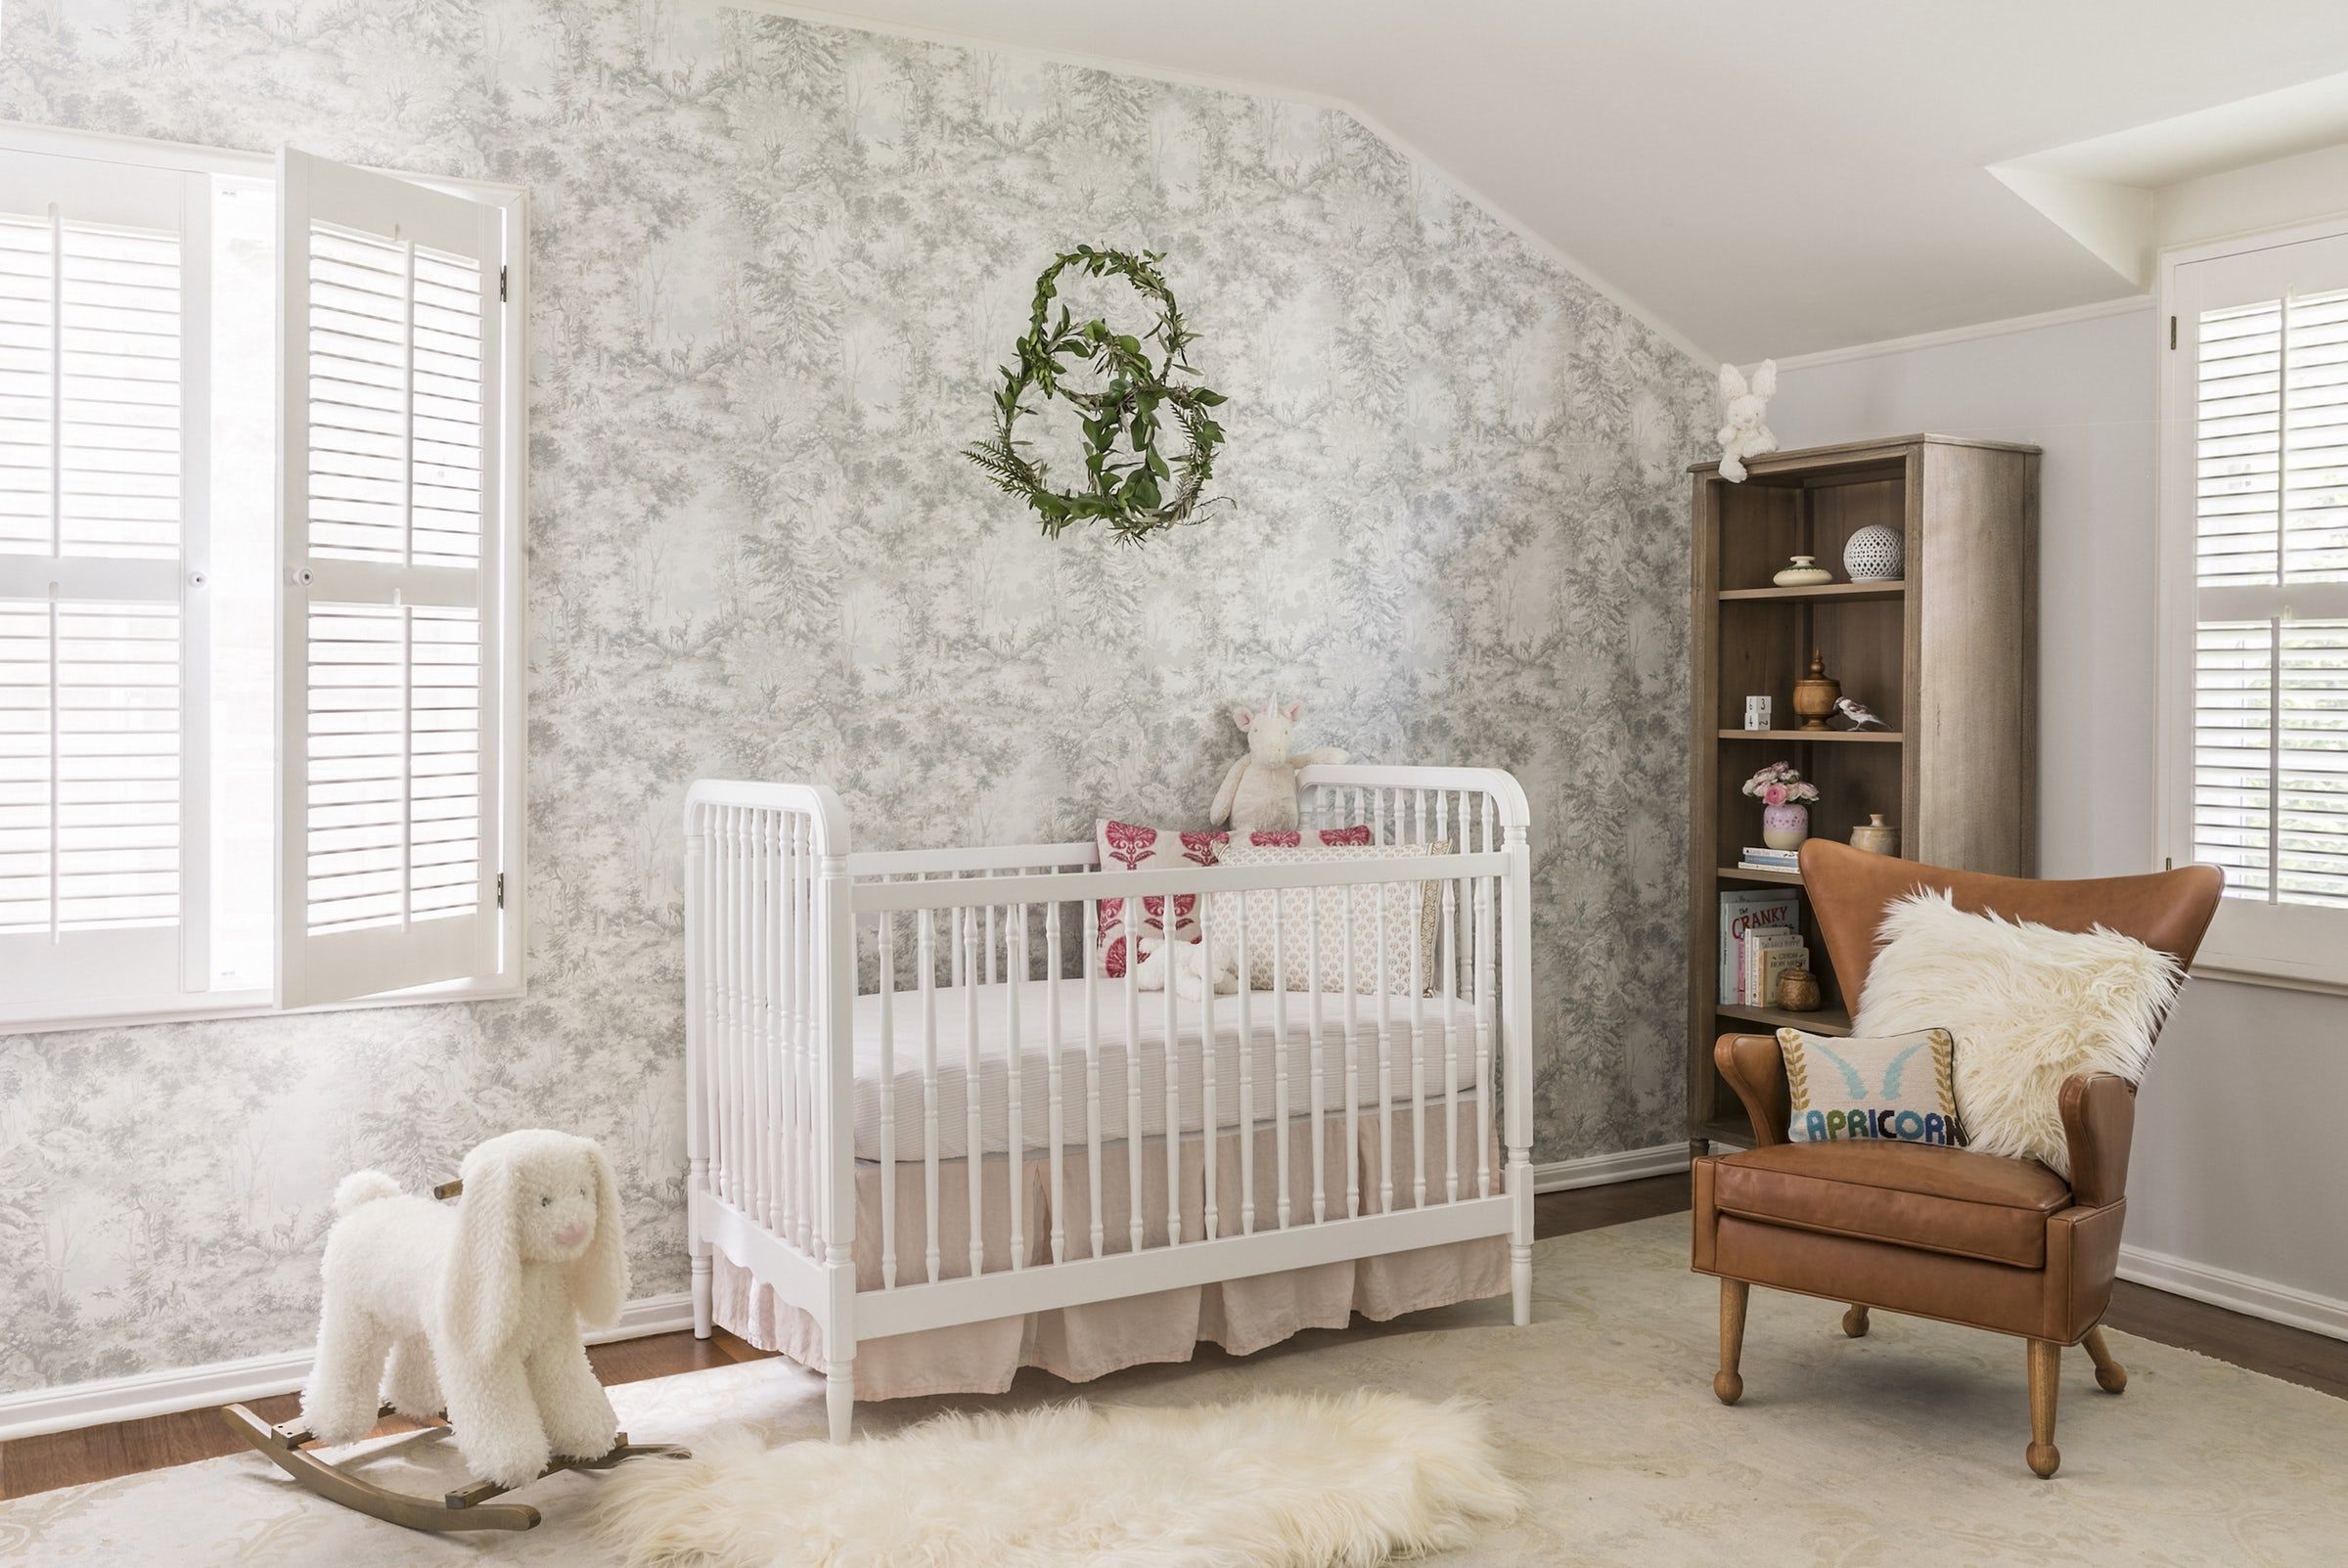 chic baby room design ideas how to decorate a nurserybaby room ideas